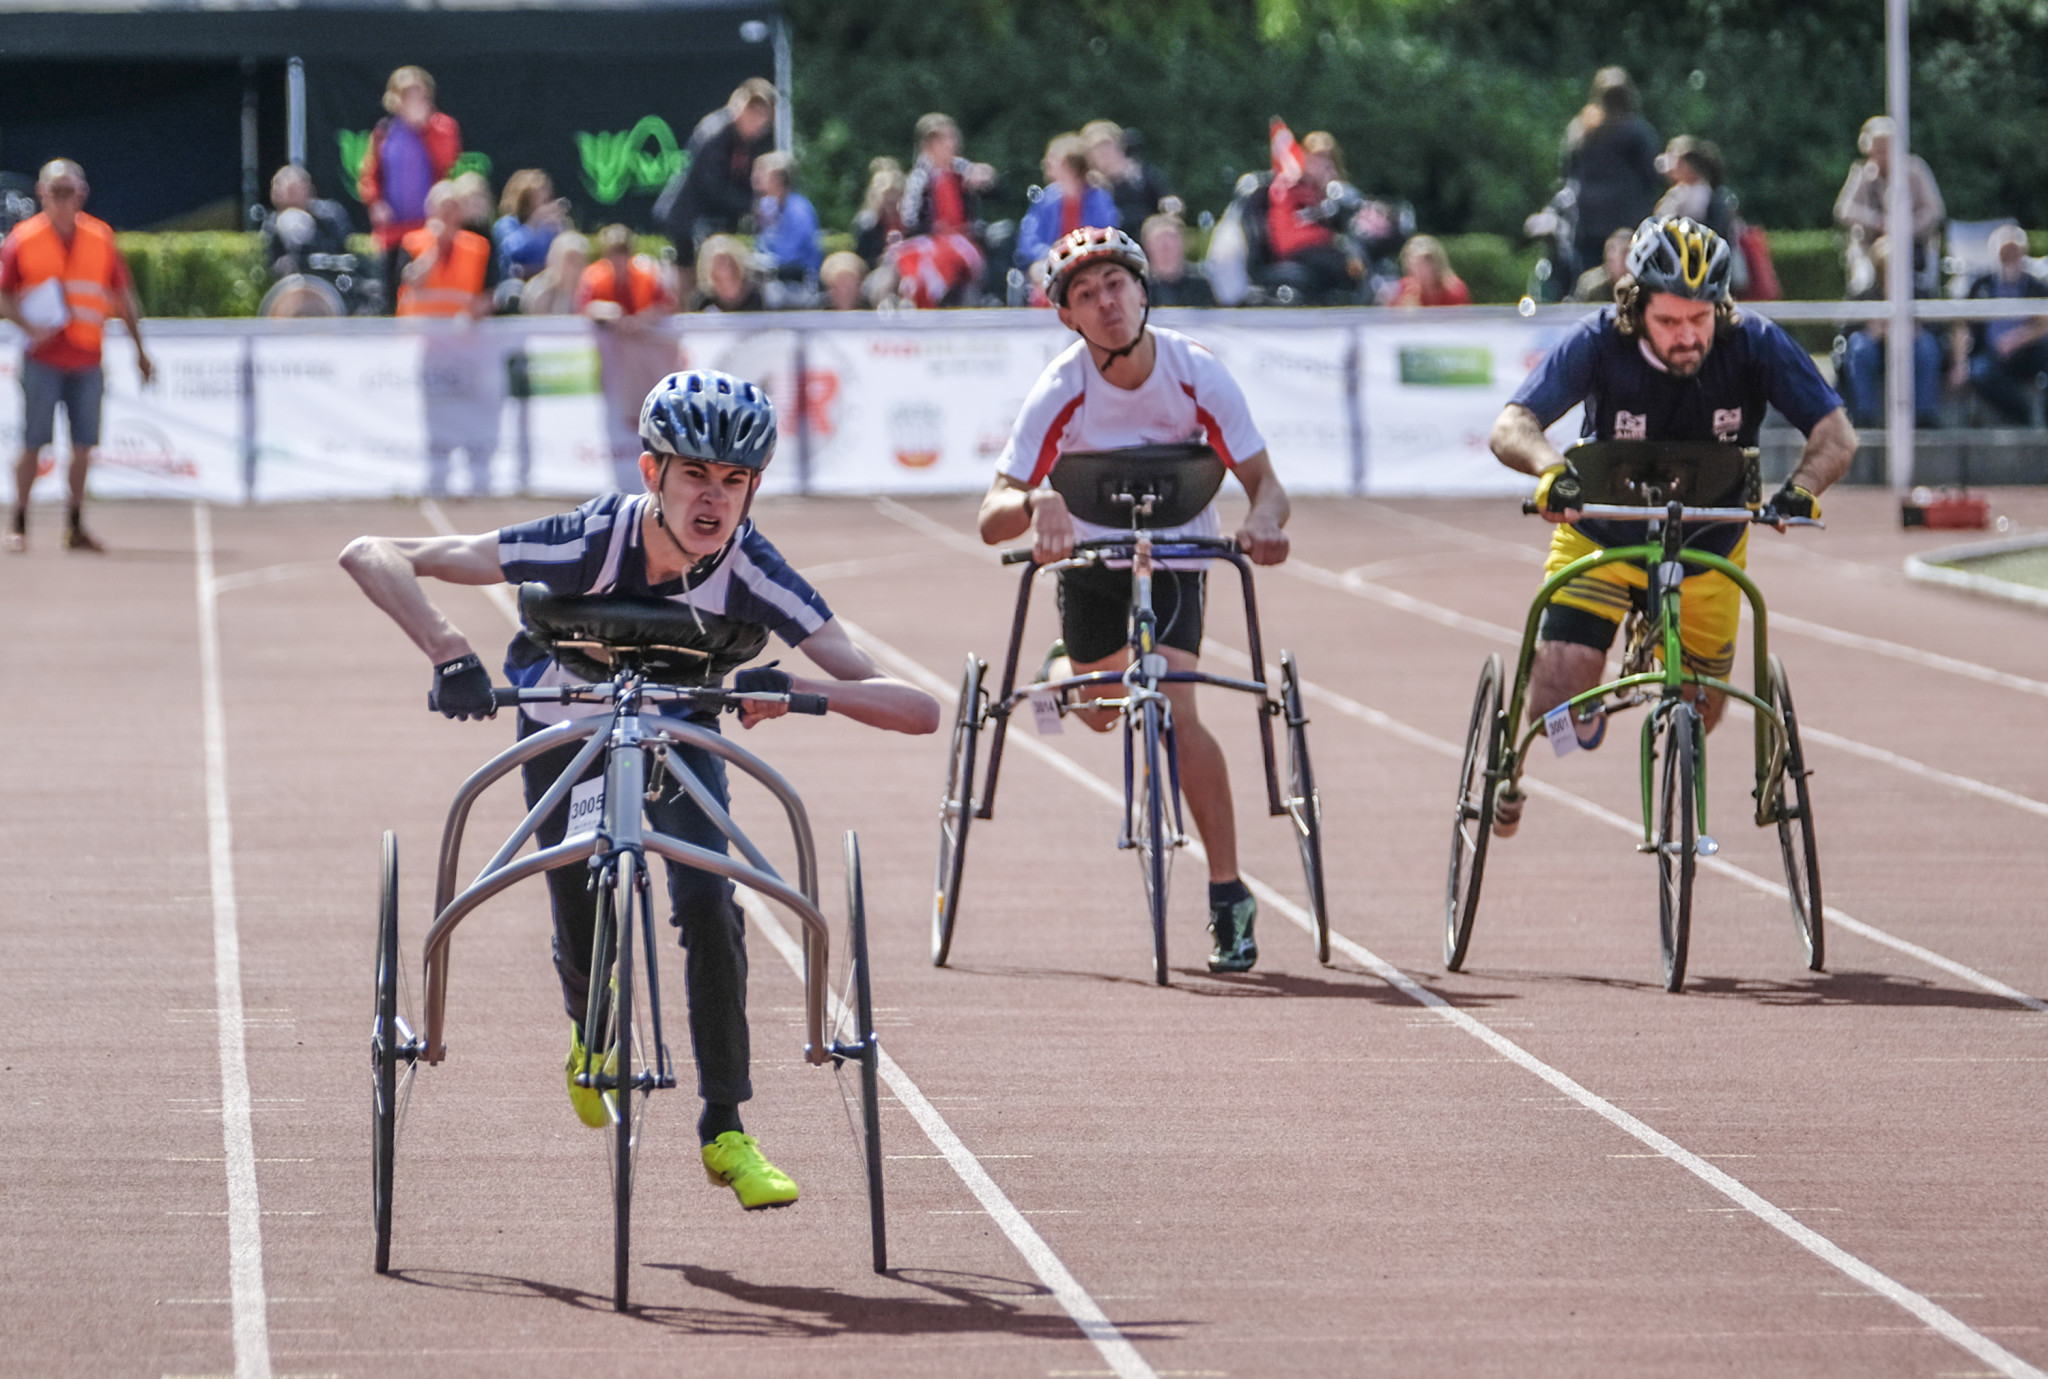 RaceRunning to be included at 2019 World Para Athletics Championships